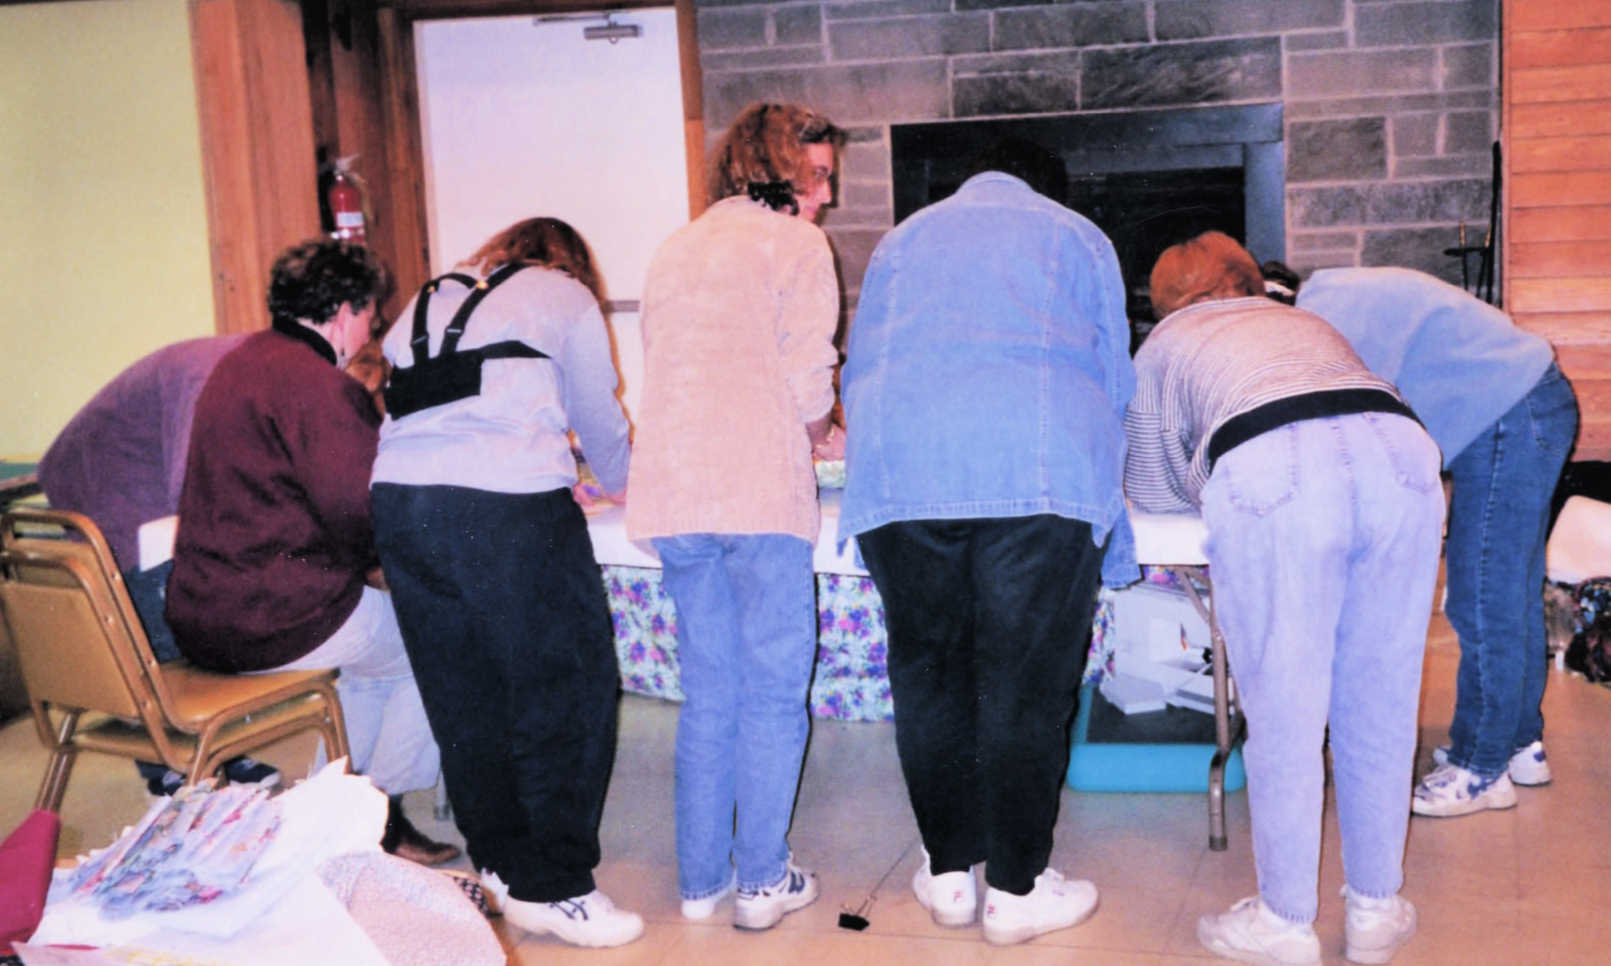 The back of a group of quilters removing borders from a quilt in progress.